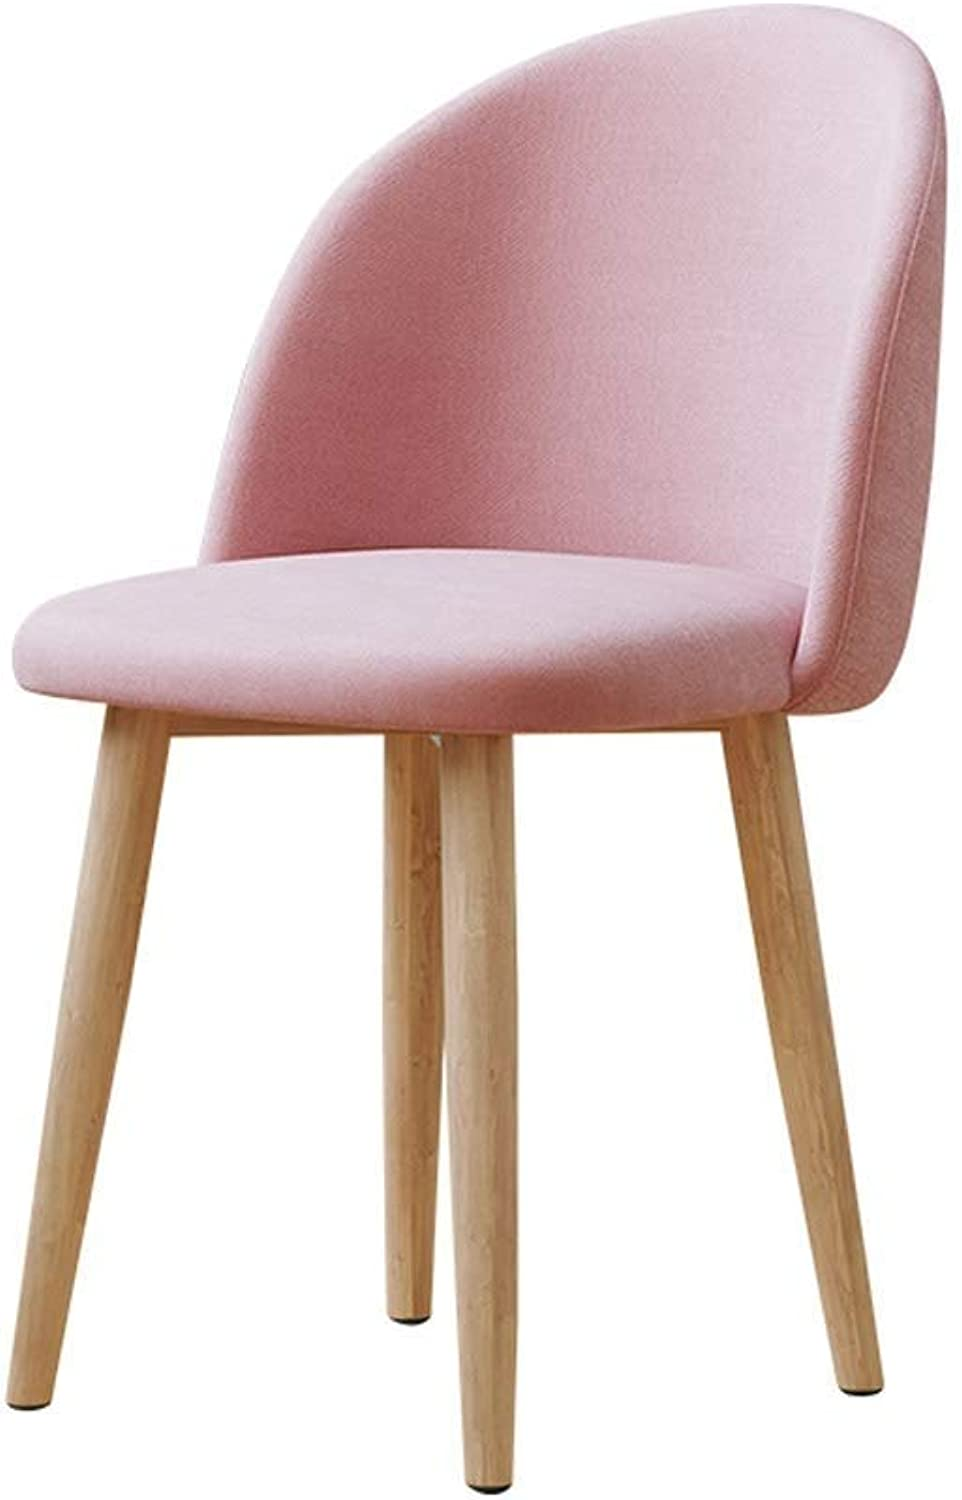 17-inch Modern Minimalist Chair, Soft Cushion Chair, Home Bedroom Bar Restaurant Cafe (color   Pink)